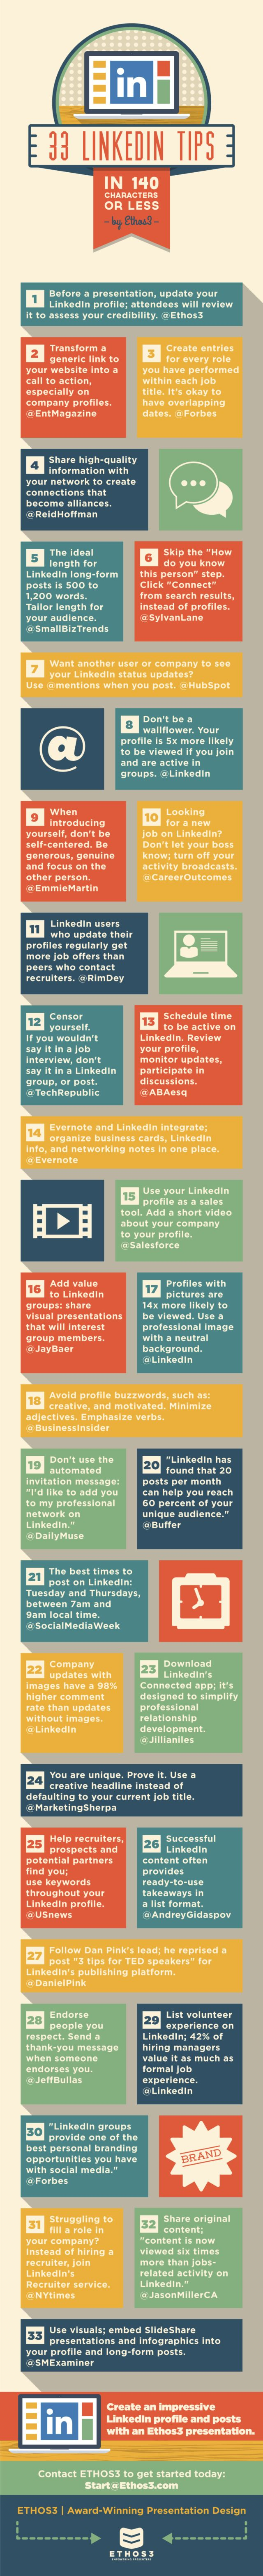 Here are 33 LinkedIn Tips for you to Tweet! by Douglas Karr on Marketing Technology Blog